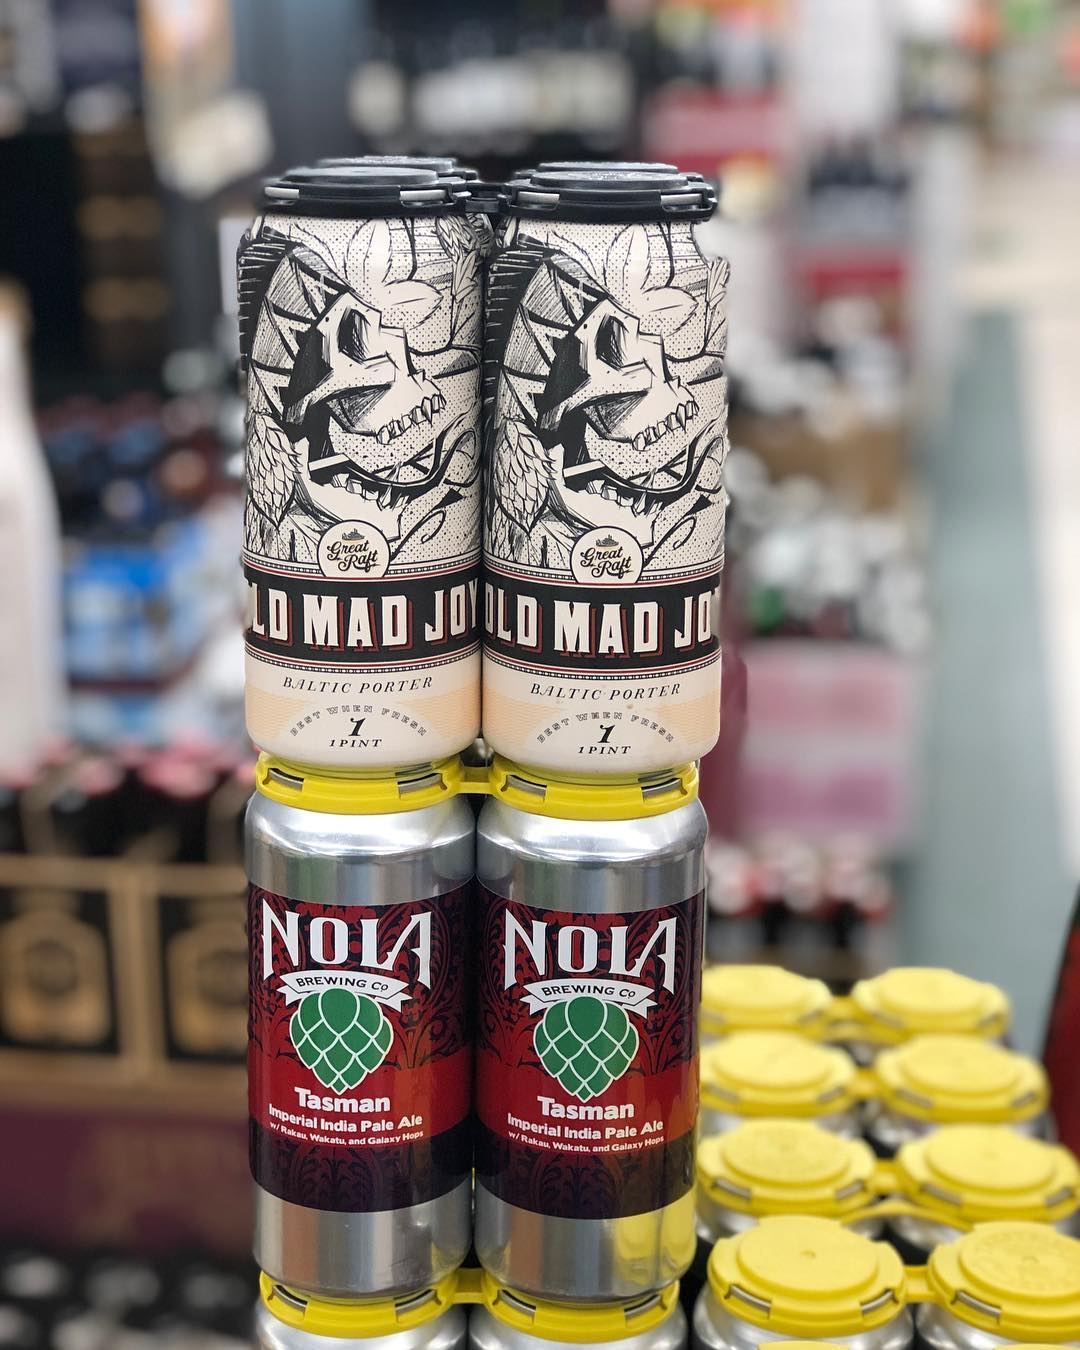 @greatraftbeer Old Mad Joy in CANS and @nolabrewing Tasman DIPA are now in stock at…